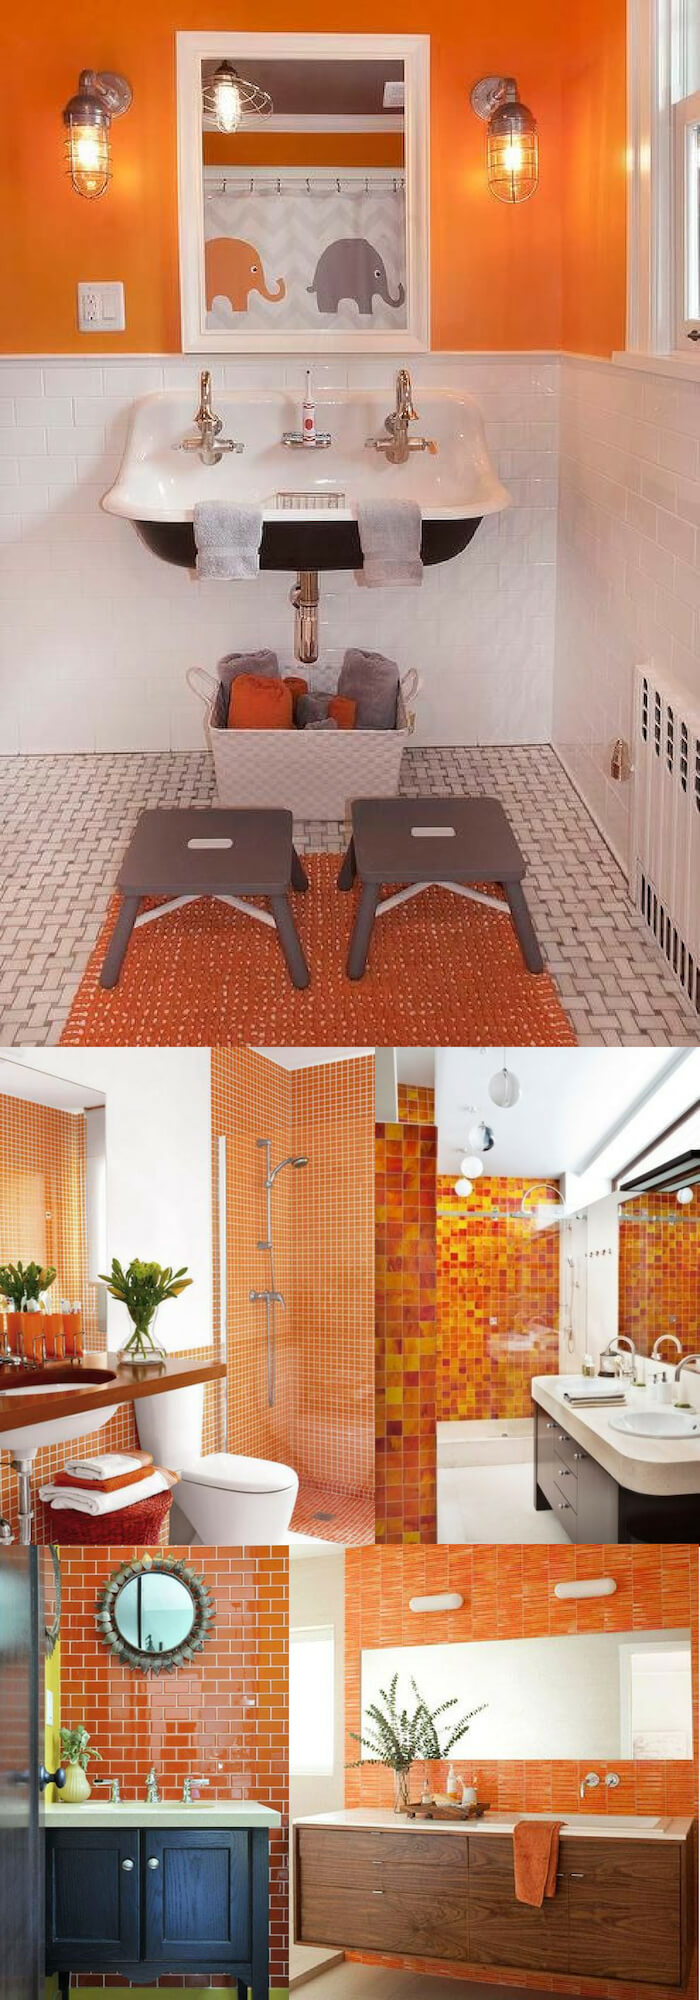 Orange Wall | Unique Wall Tile Ideas for Bathroom Design